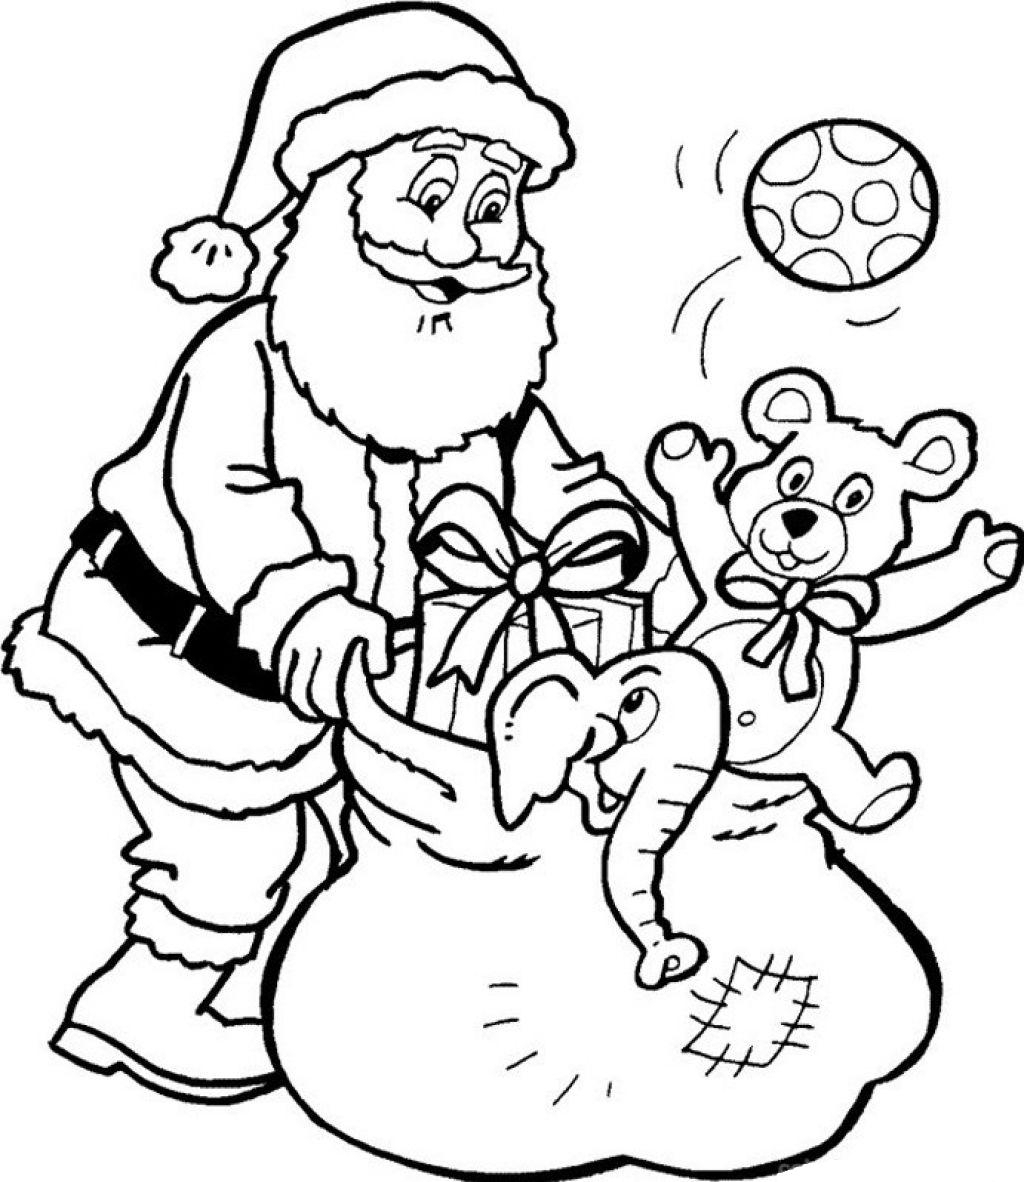 Santa Claus For Coloring Pages With Awesome Cartoon Design Printable